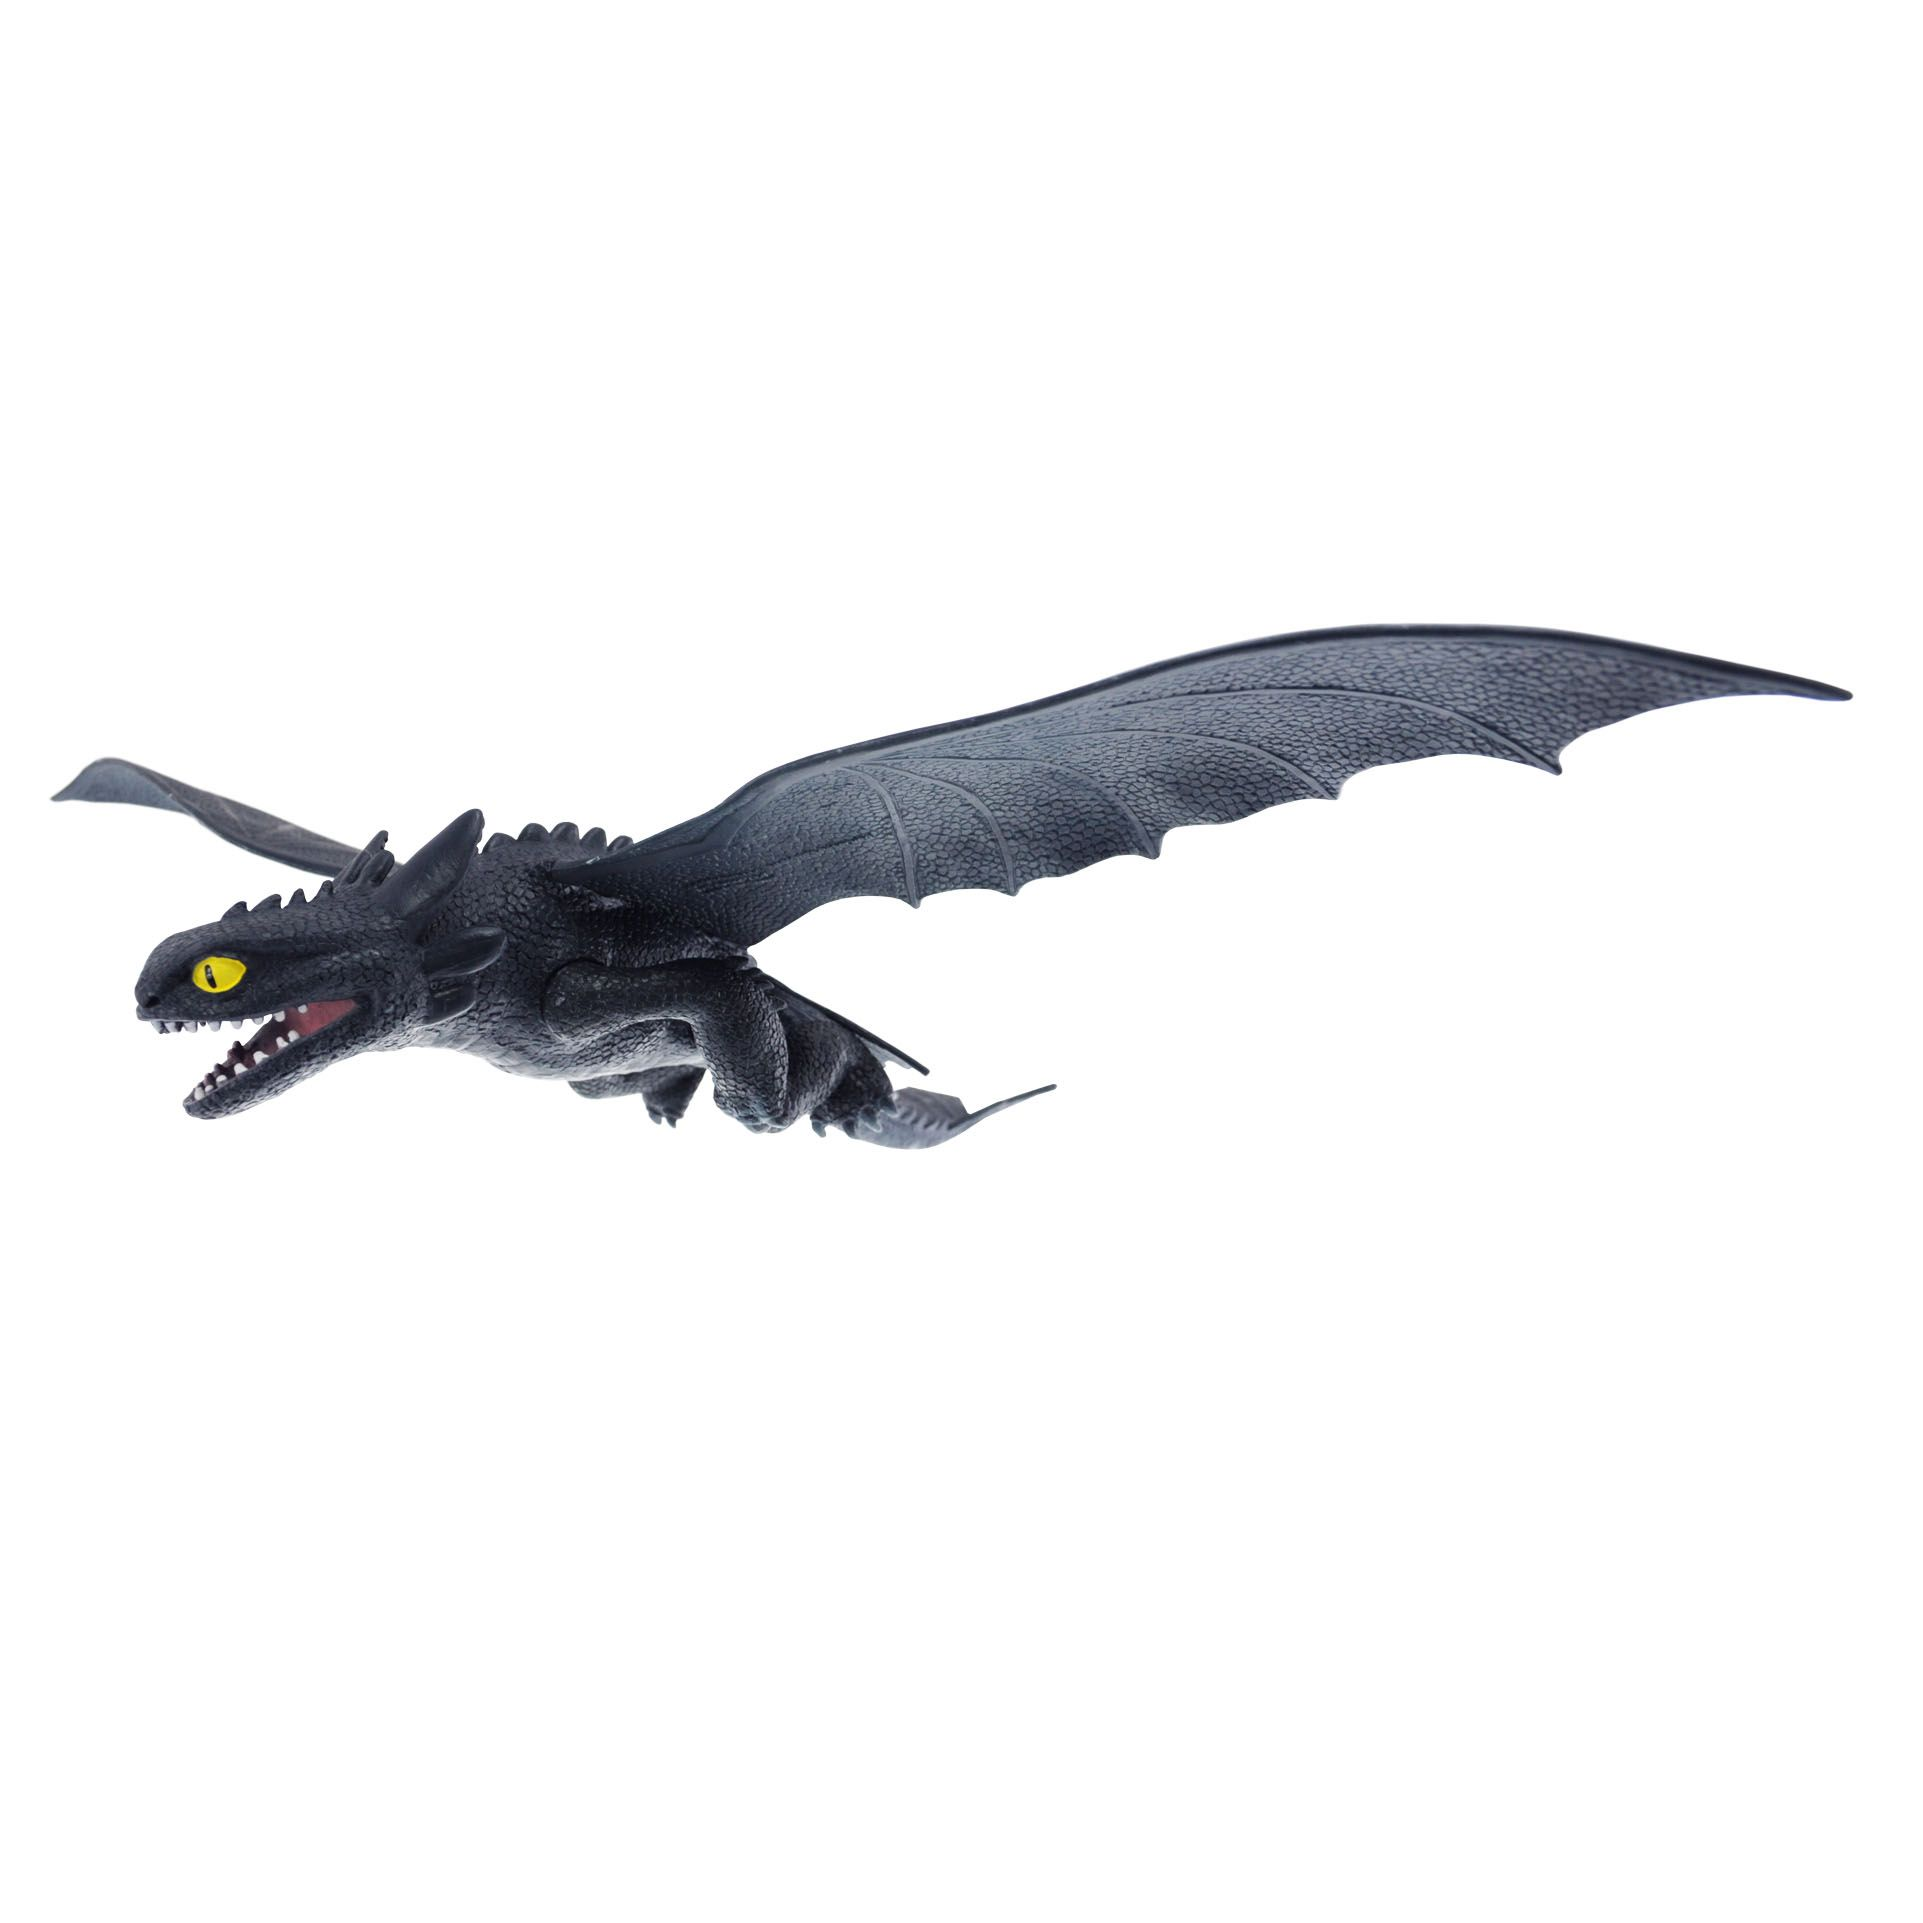 Toothless Night Fury Plastic Toy How to train your Dragon